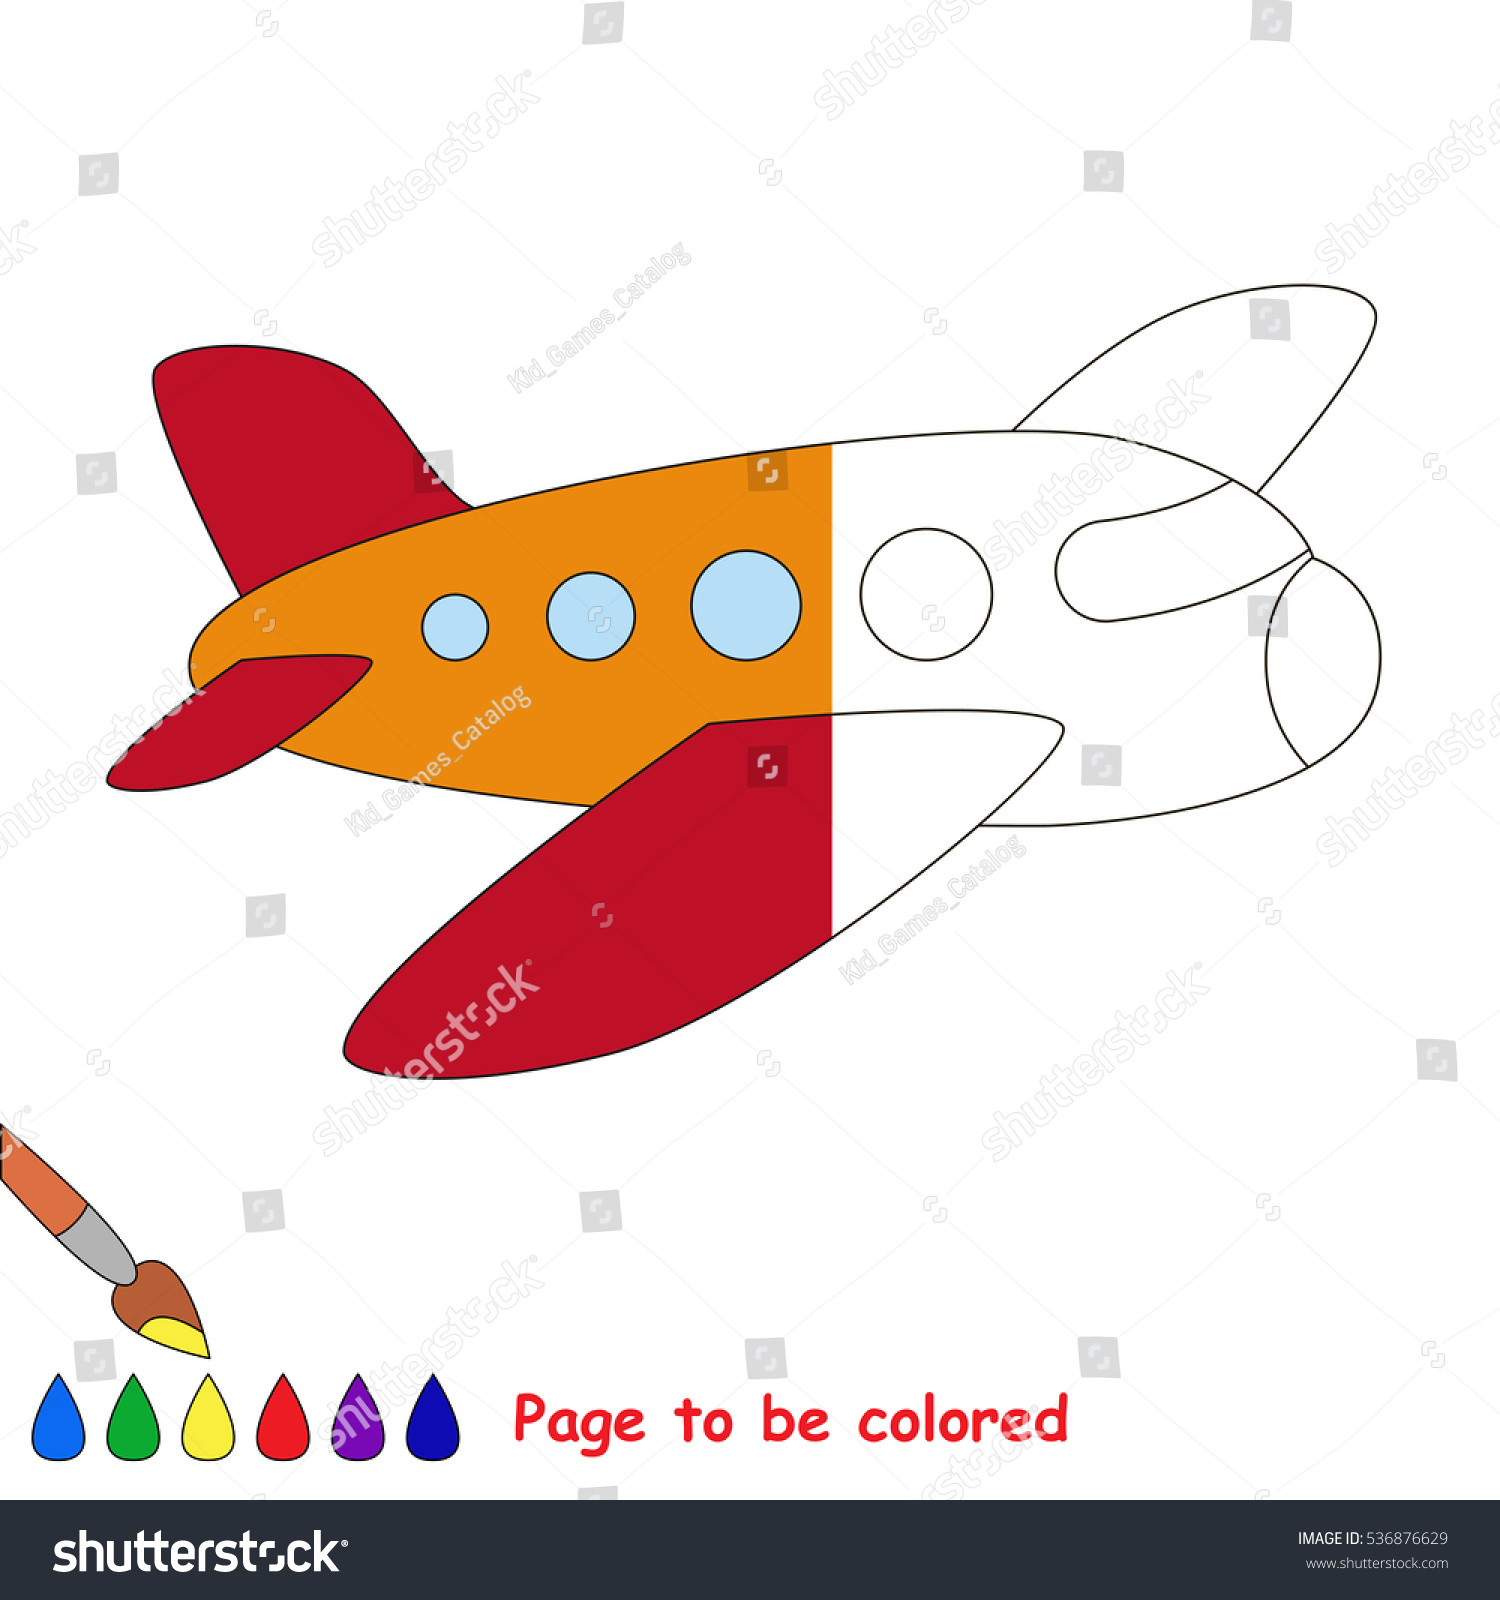 Airplane Be Colored Coloring Book Educate Stock Vector HD (Royalty ...